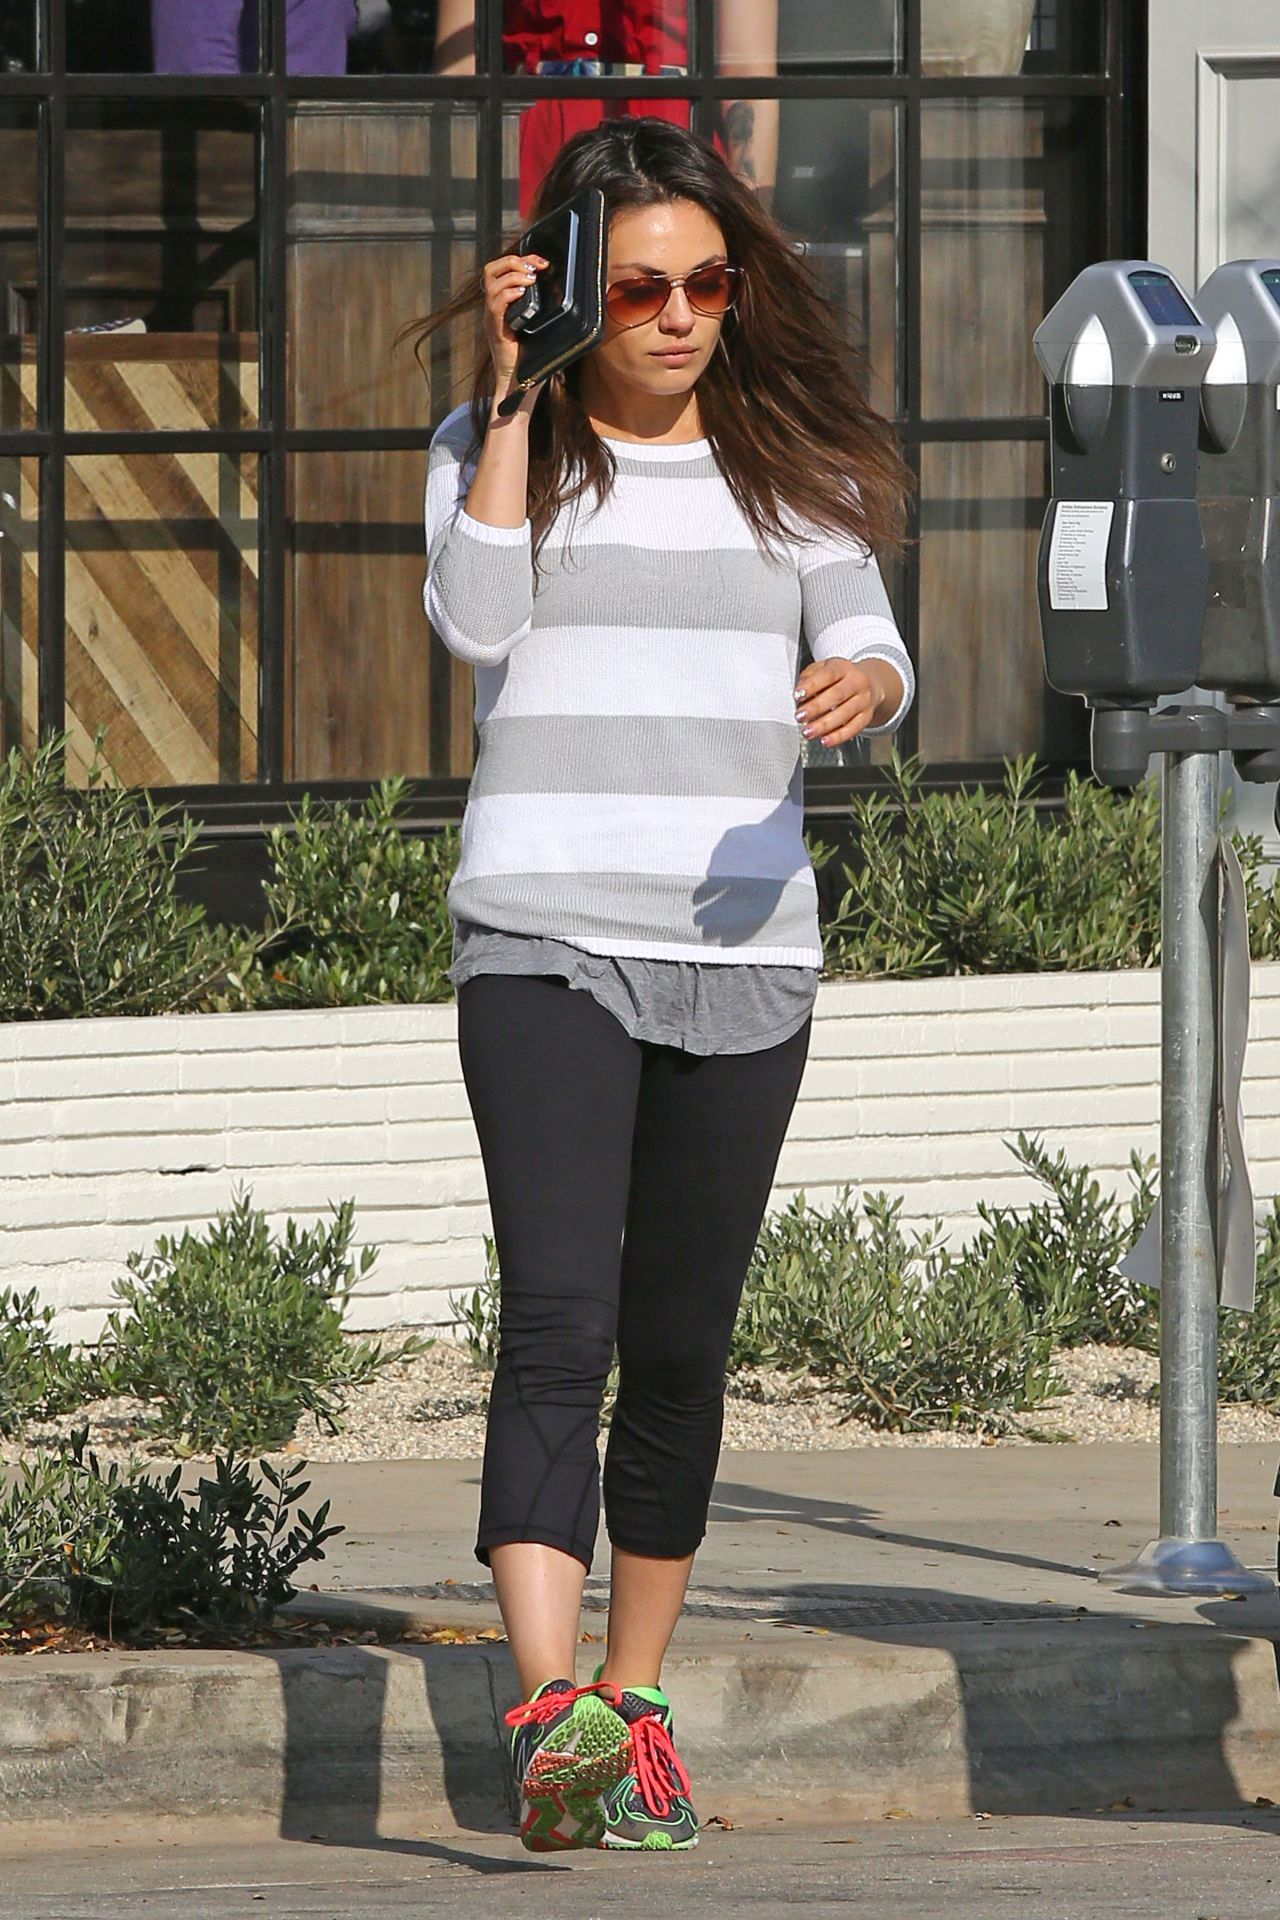 Mila Kunis Street Style In Spandex Out In LA January 2014